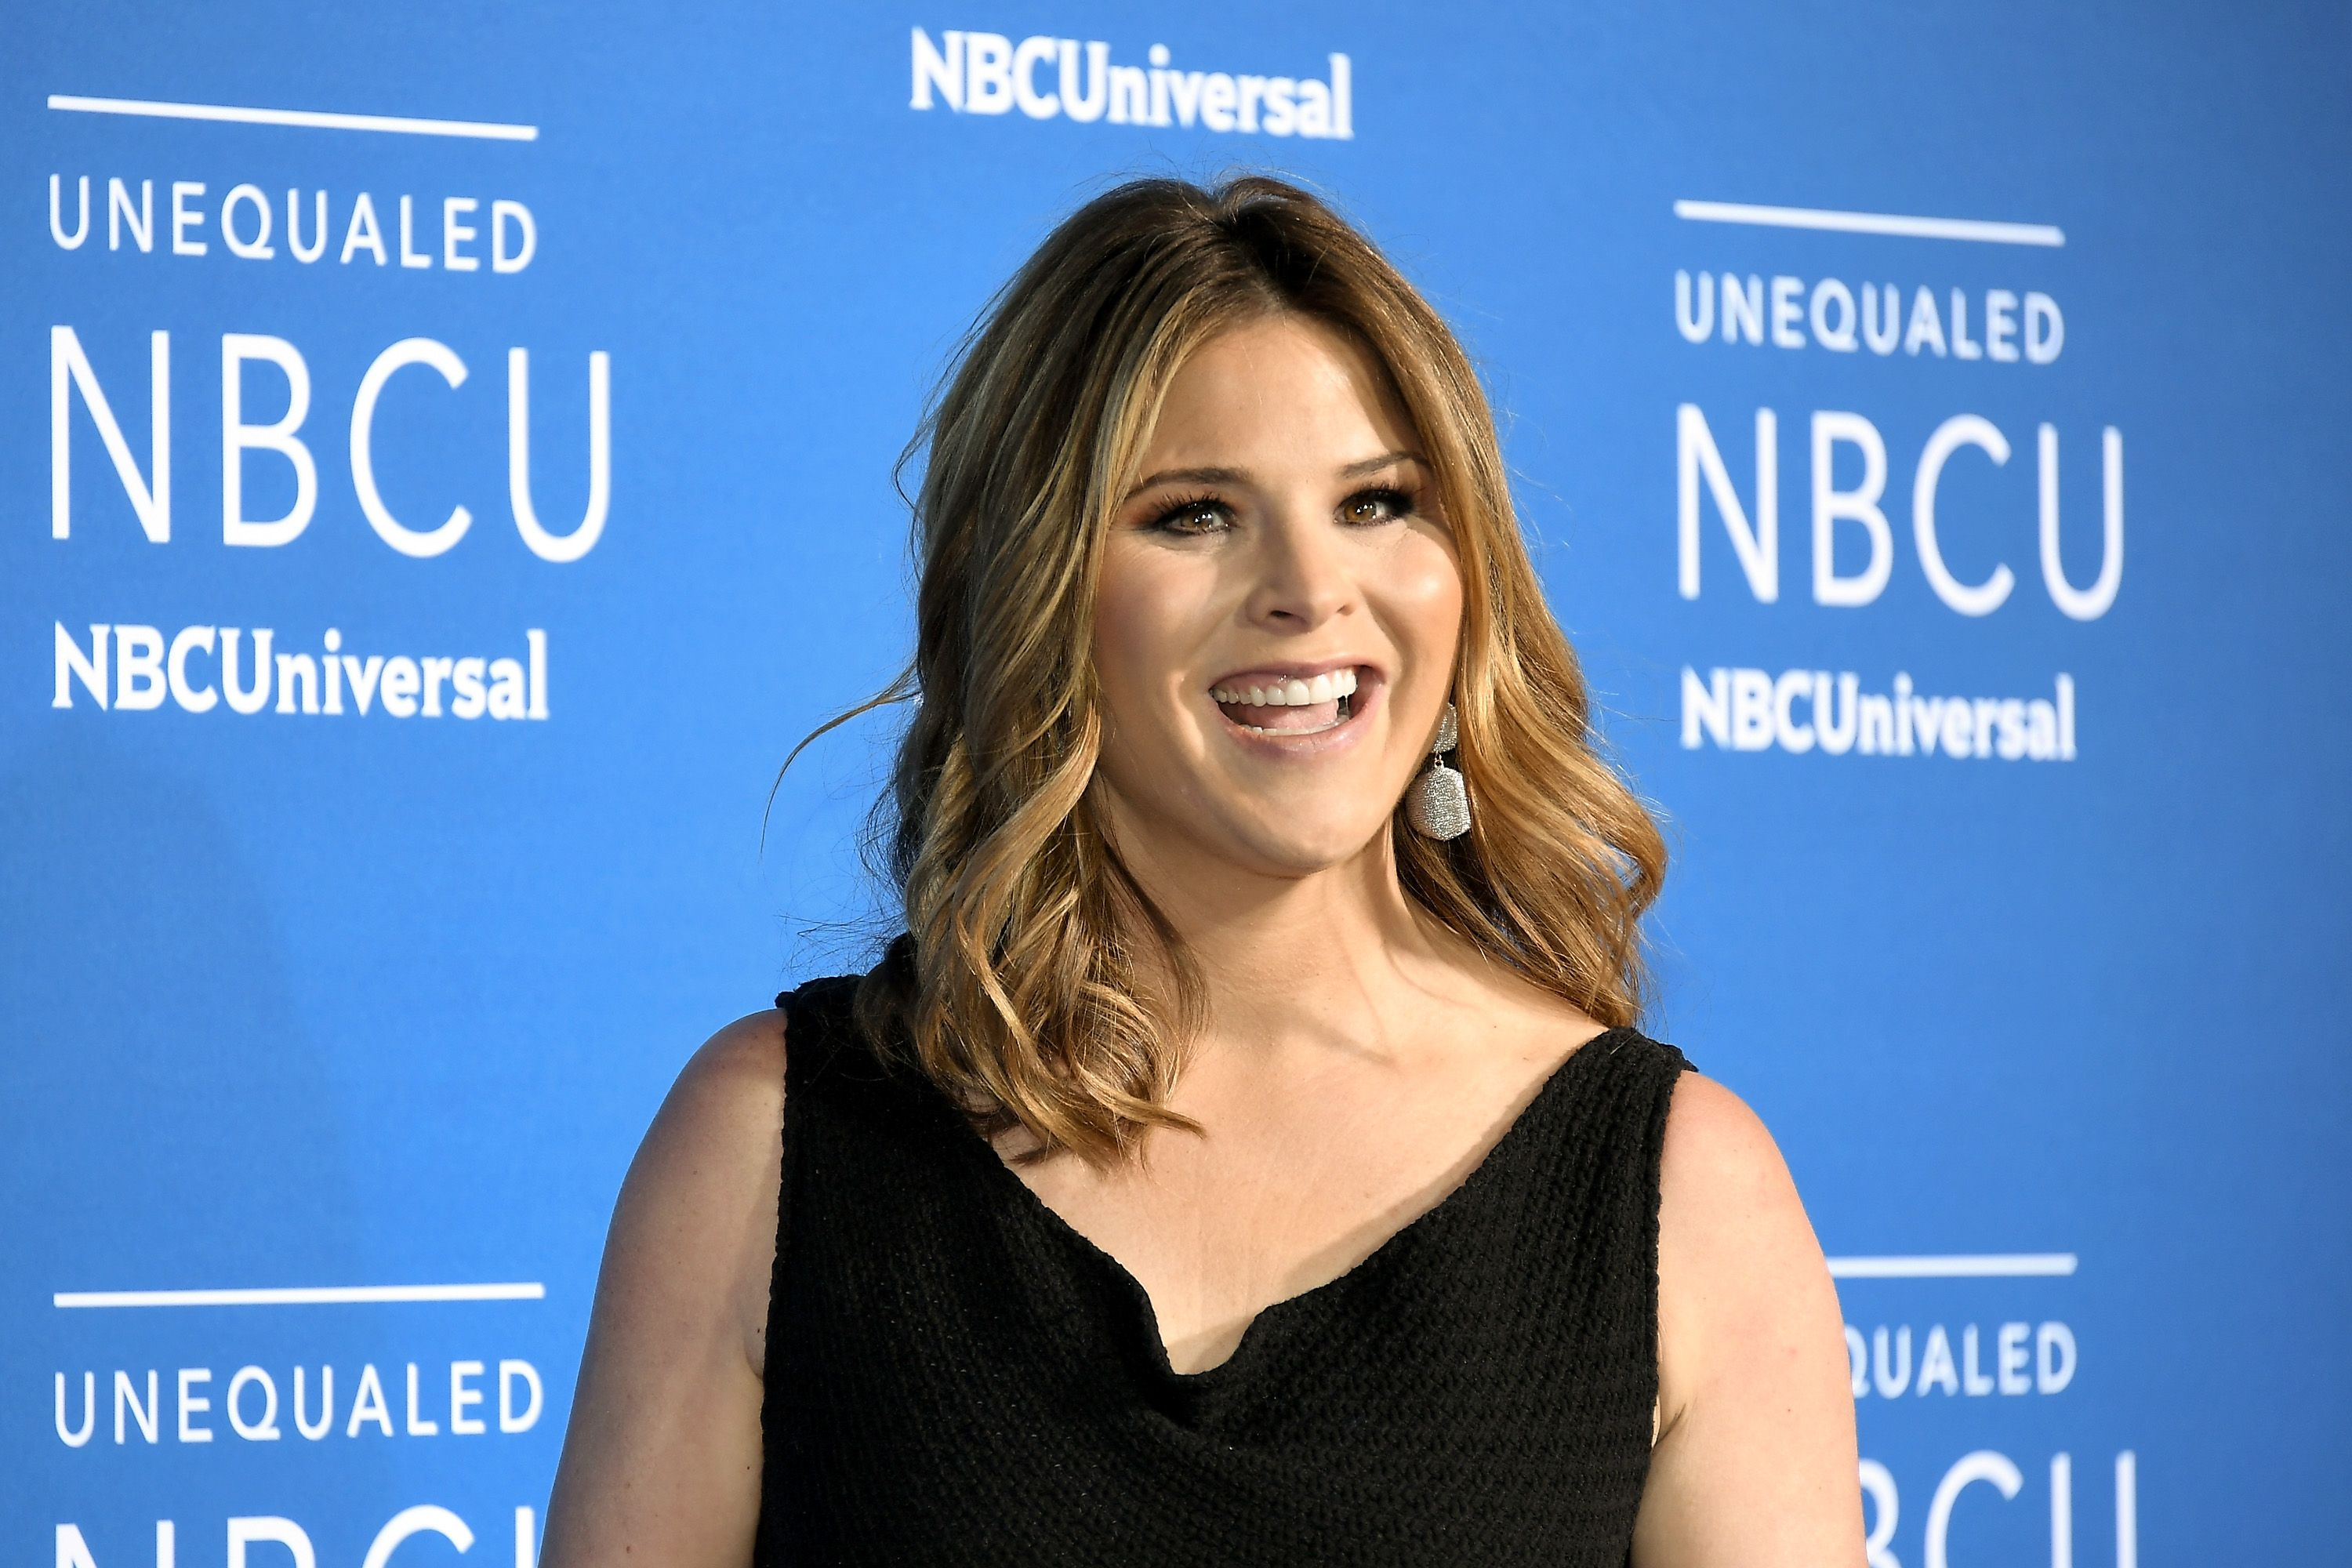 Jenna Bush Hager at the 2017 NBCUniversal Upfront at Radio City Music Hall on May 15, 2017 | Photo: Getty Images